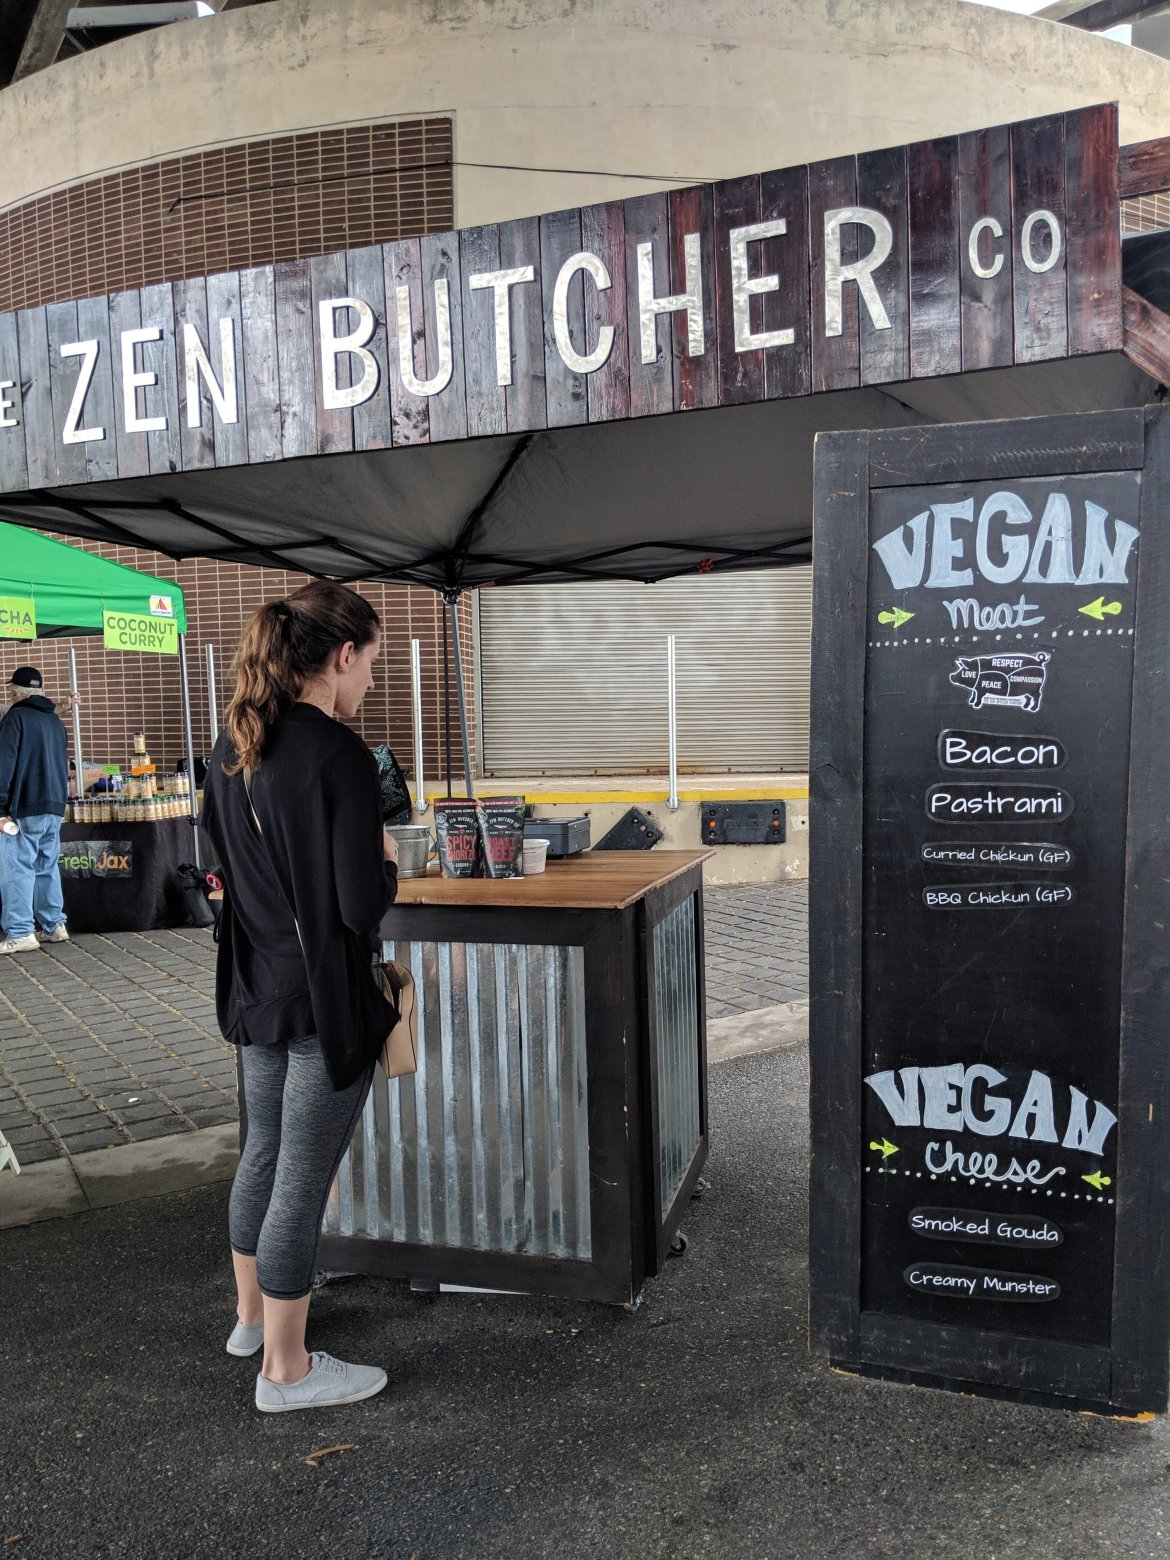 The Zen Butcher sign